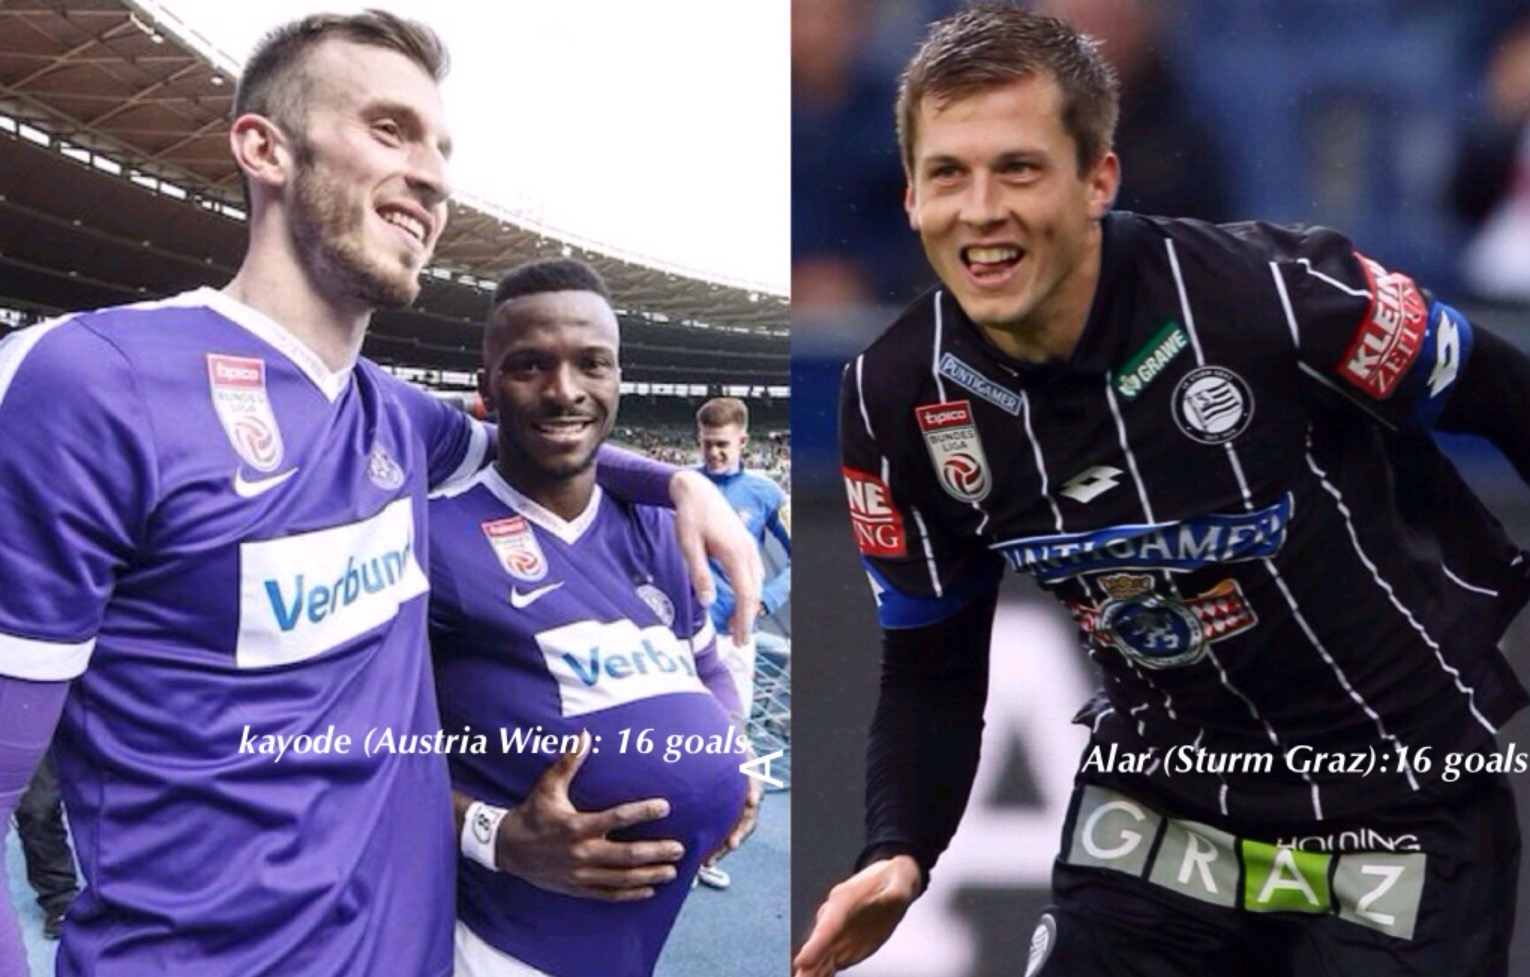 Kayode: I'm In No Competition With Anyone For Austrian League Top Scorer Award